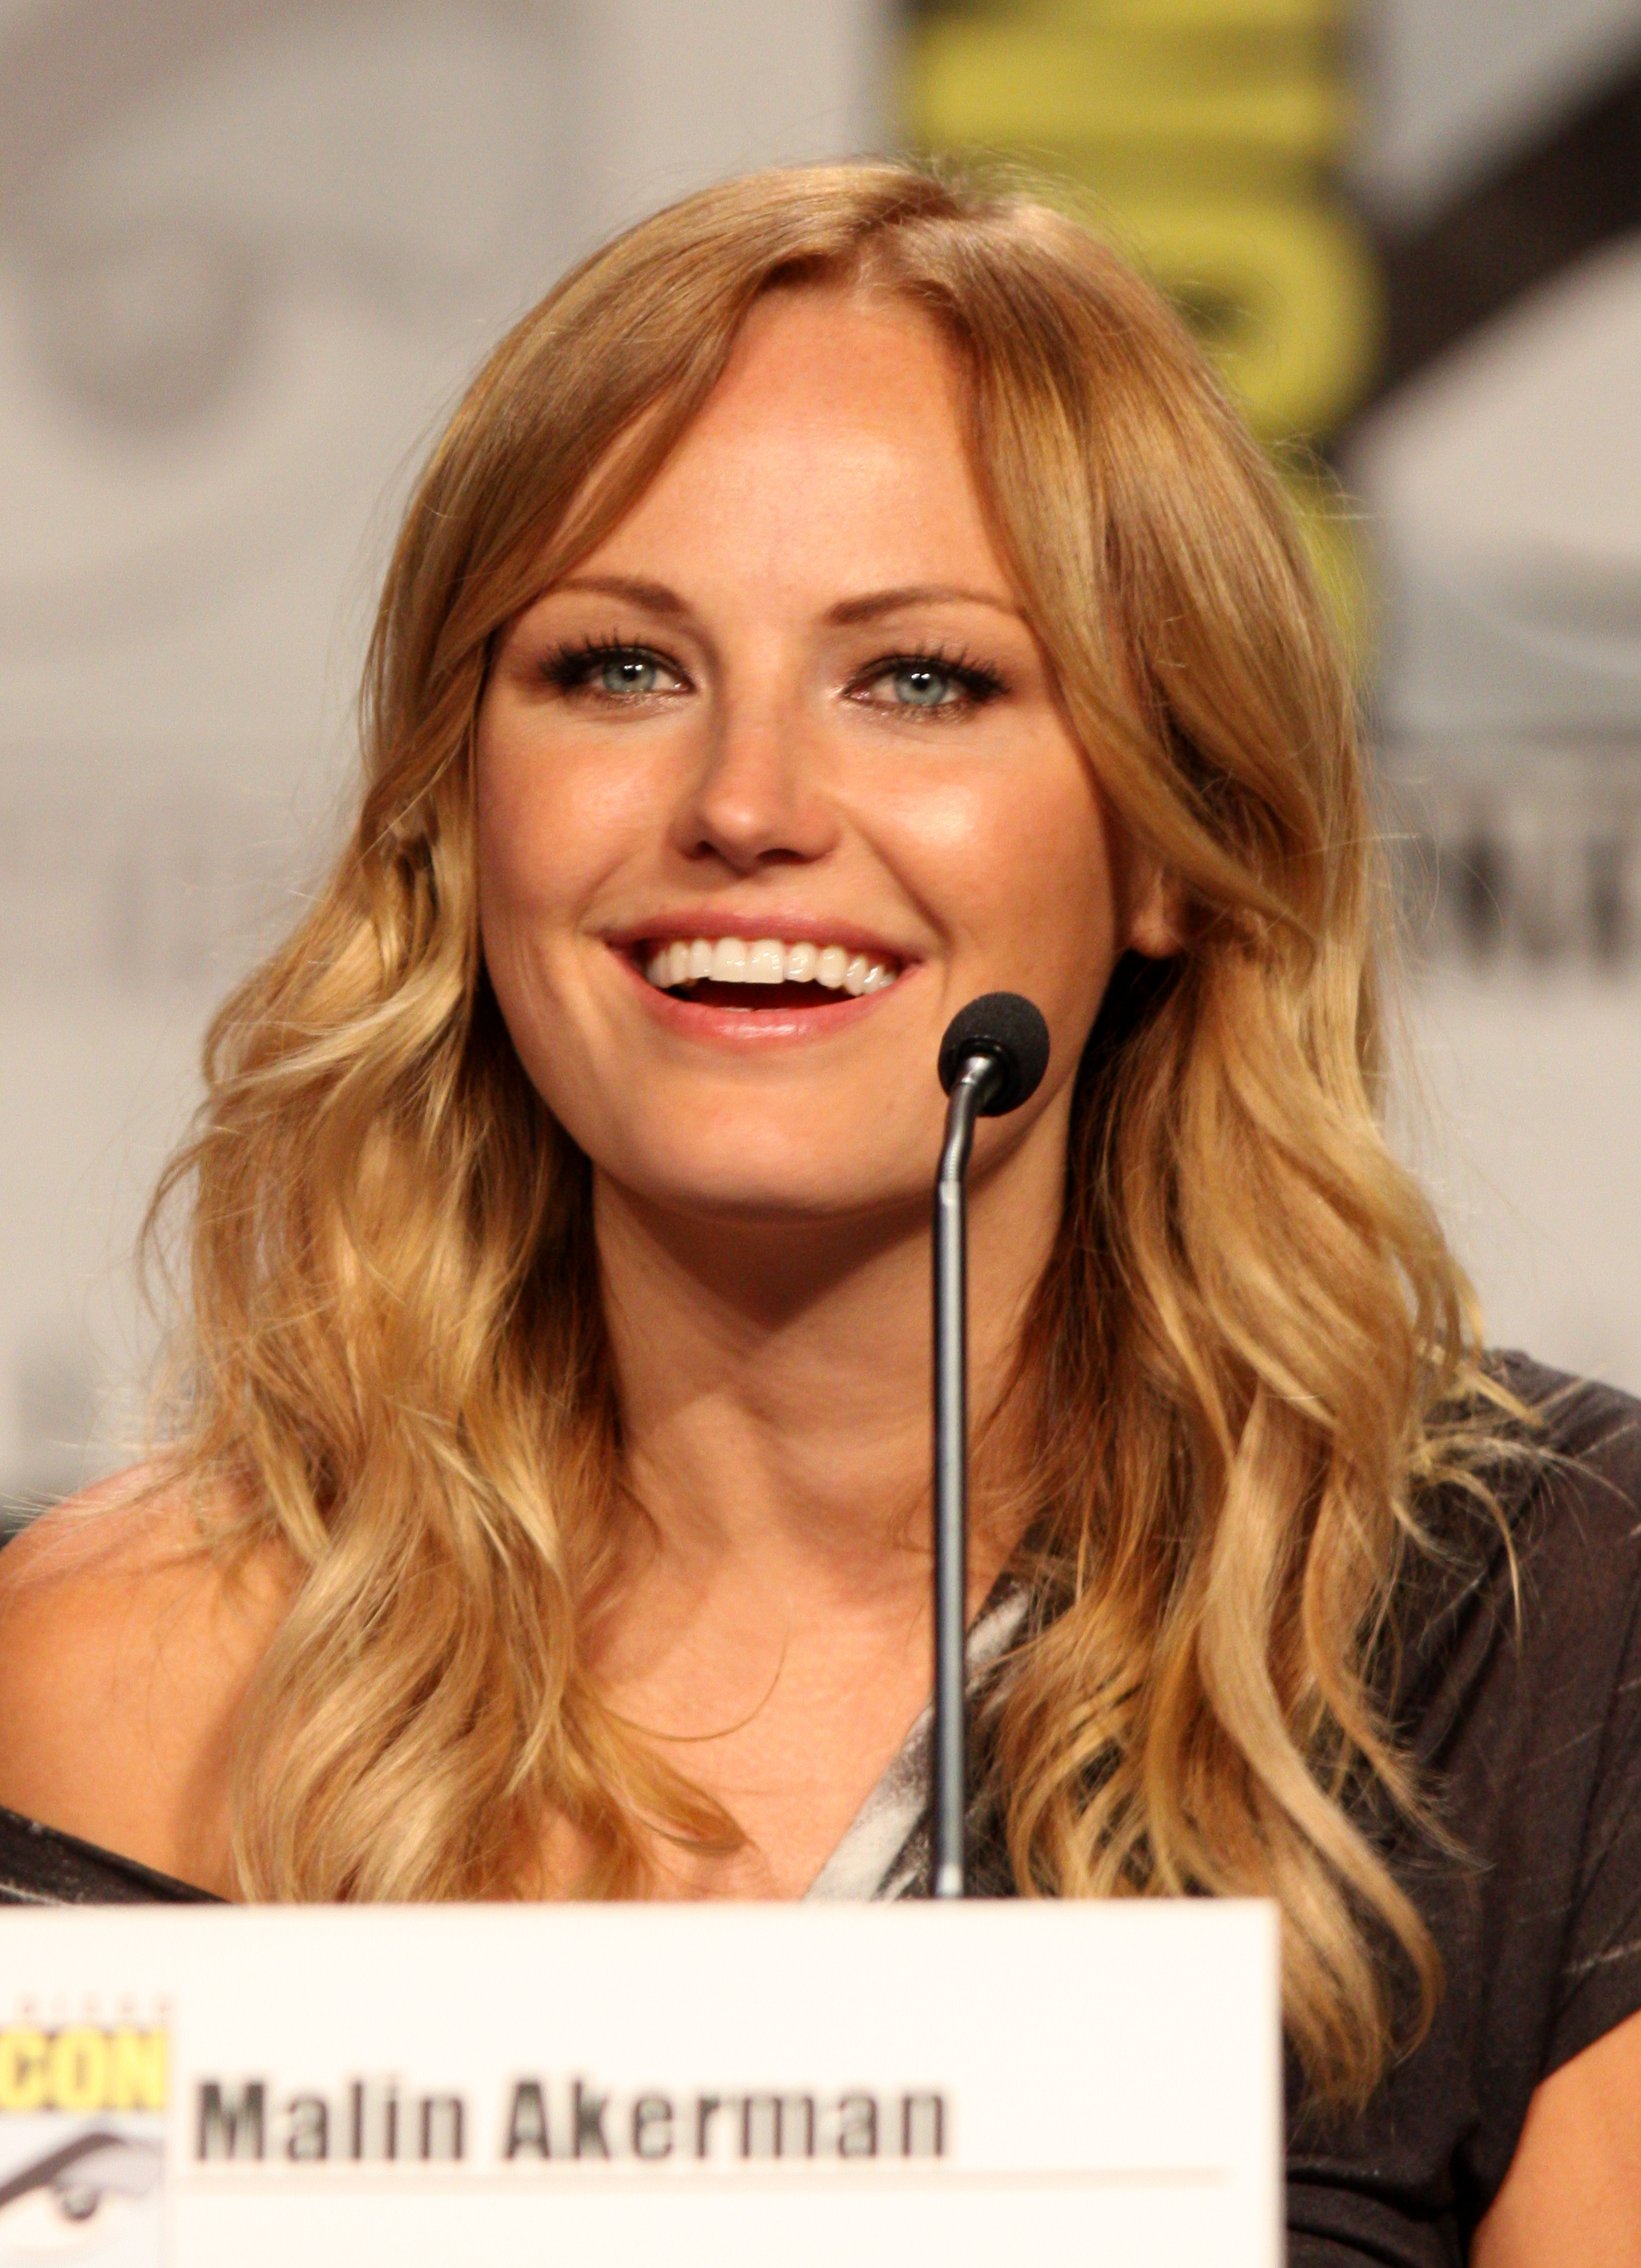 A woman (Malin Åkerman) with golden blonde hair and tan skin wears a brown shirt and smiles while sitting in front of a microphone. In front of her is also a name tag with 'Malin Akerman' written on it.